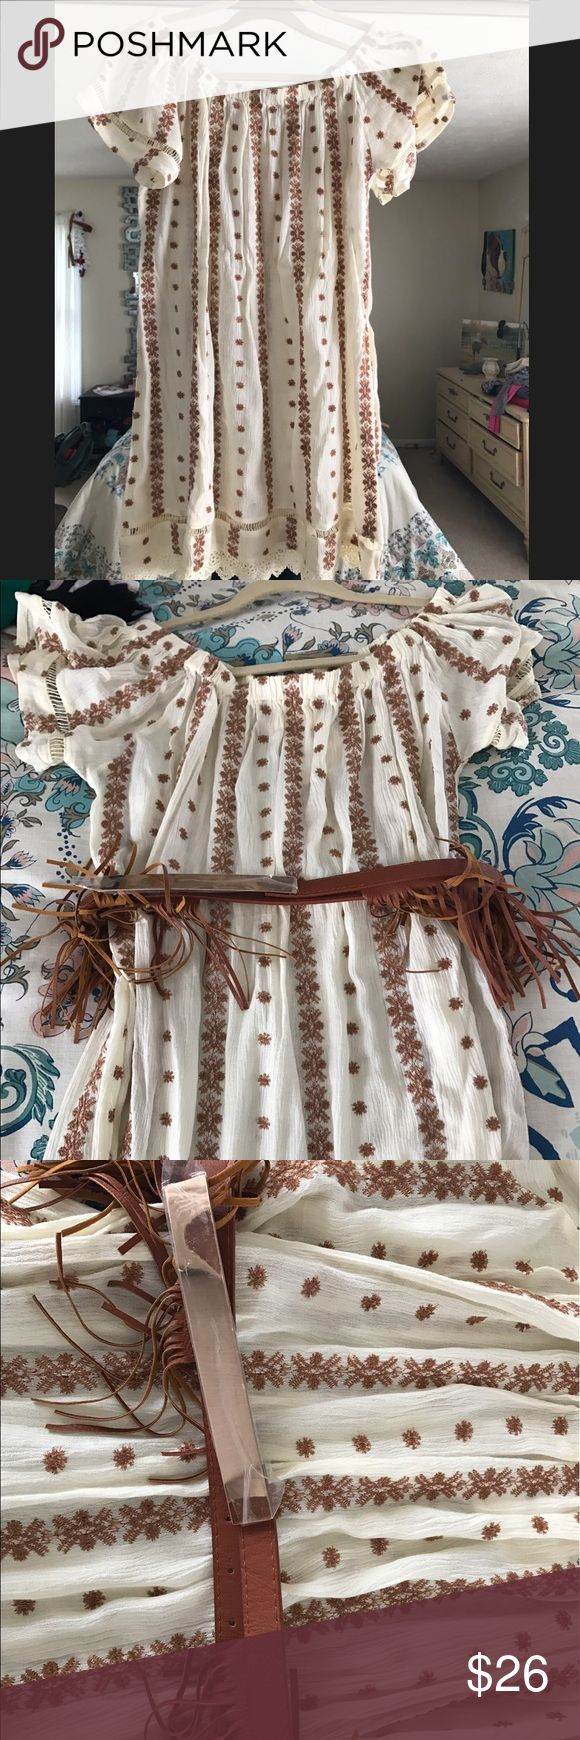 Boutique Dress 👗 with Fringe belt NWT NWT Boutique Dress 👗 with fringe belt!! Cute for country concert Dresses Midi